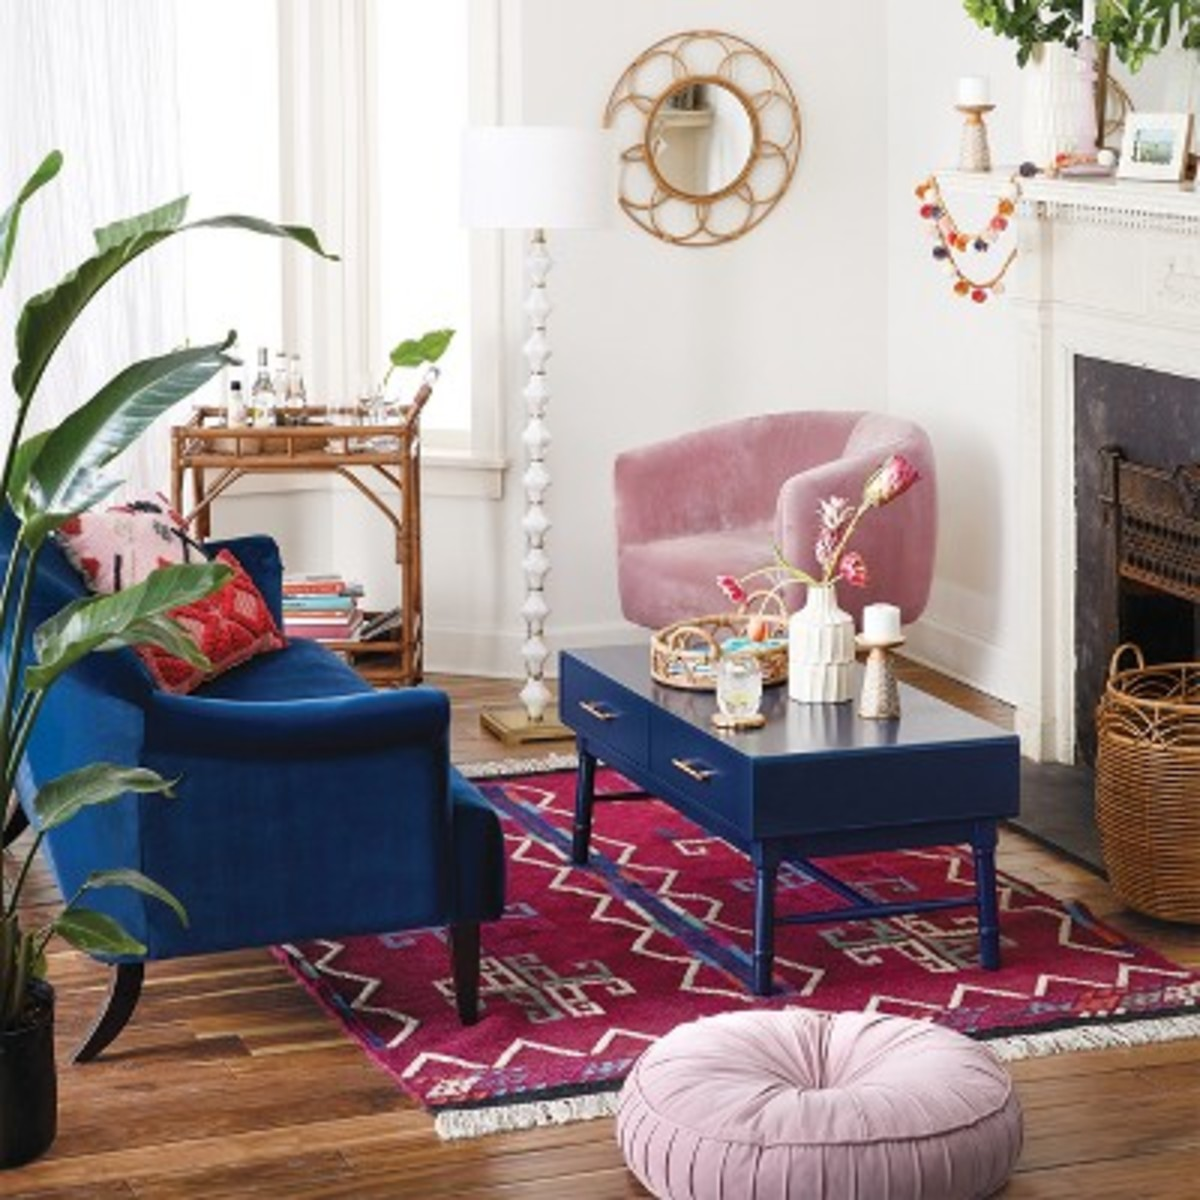 2019 Home Décor Trends